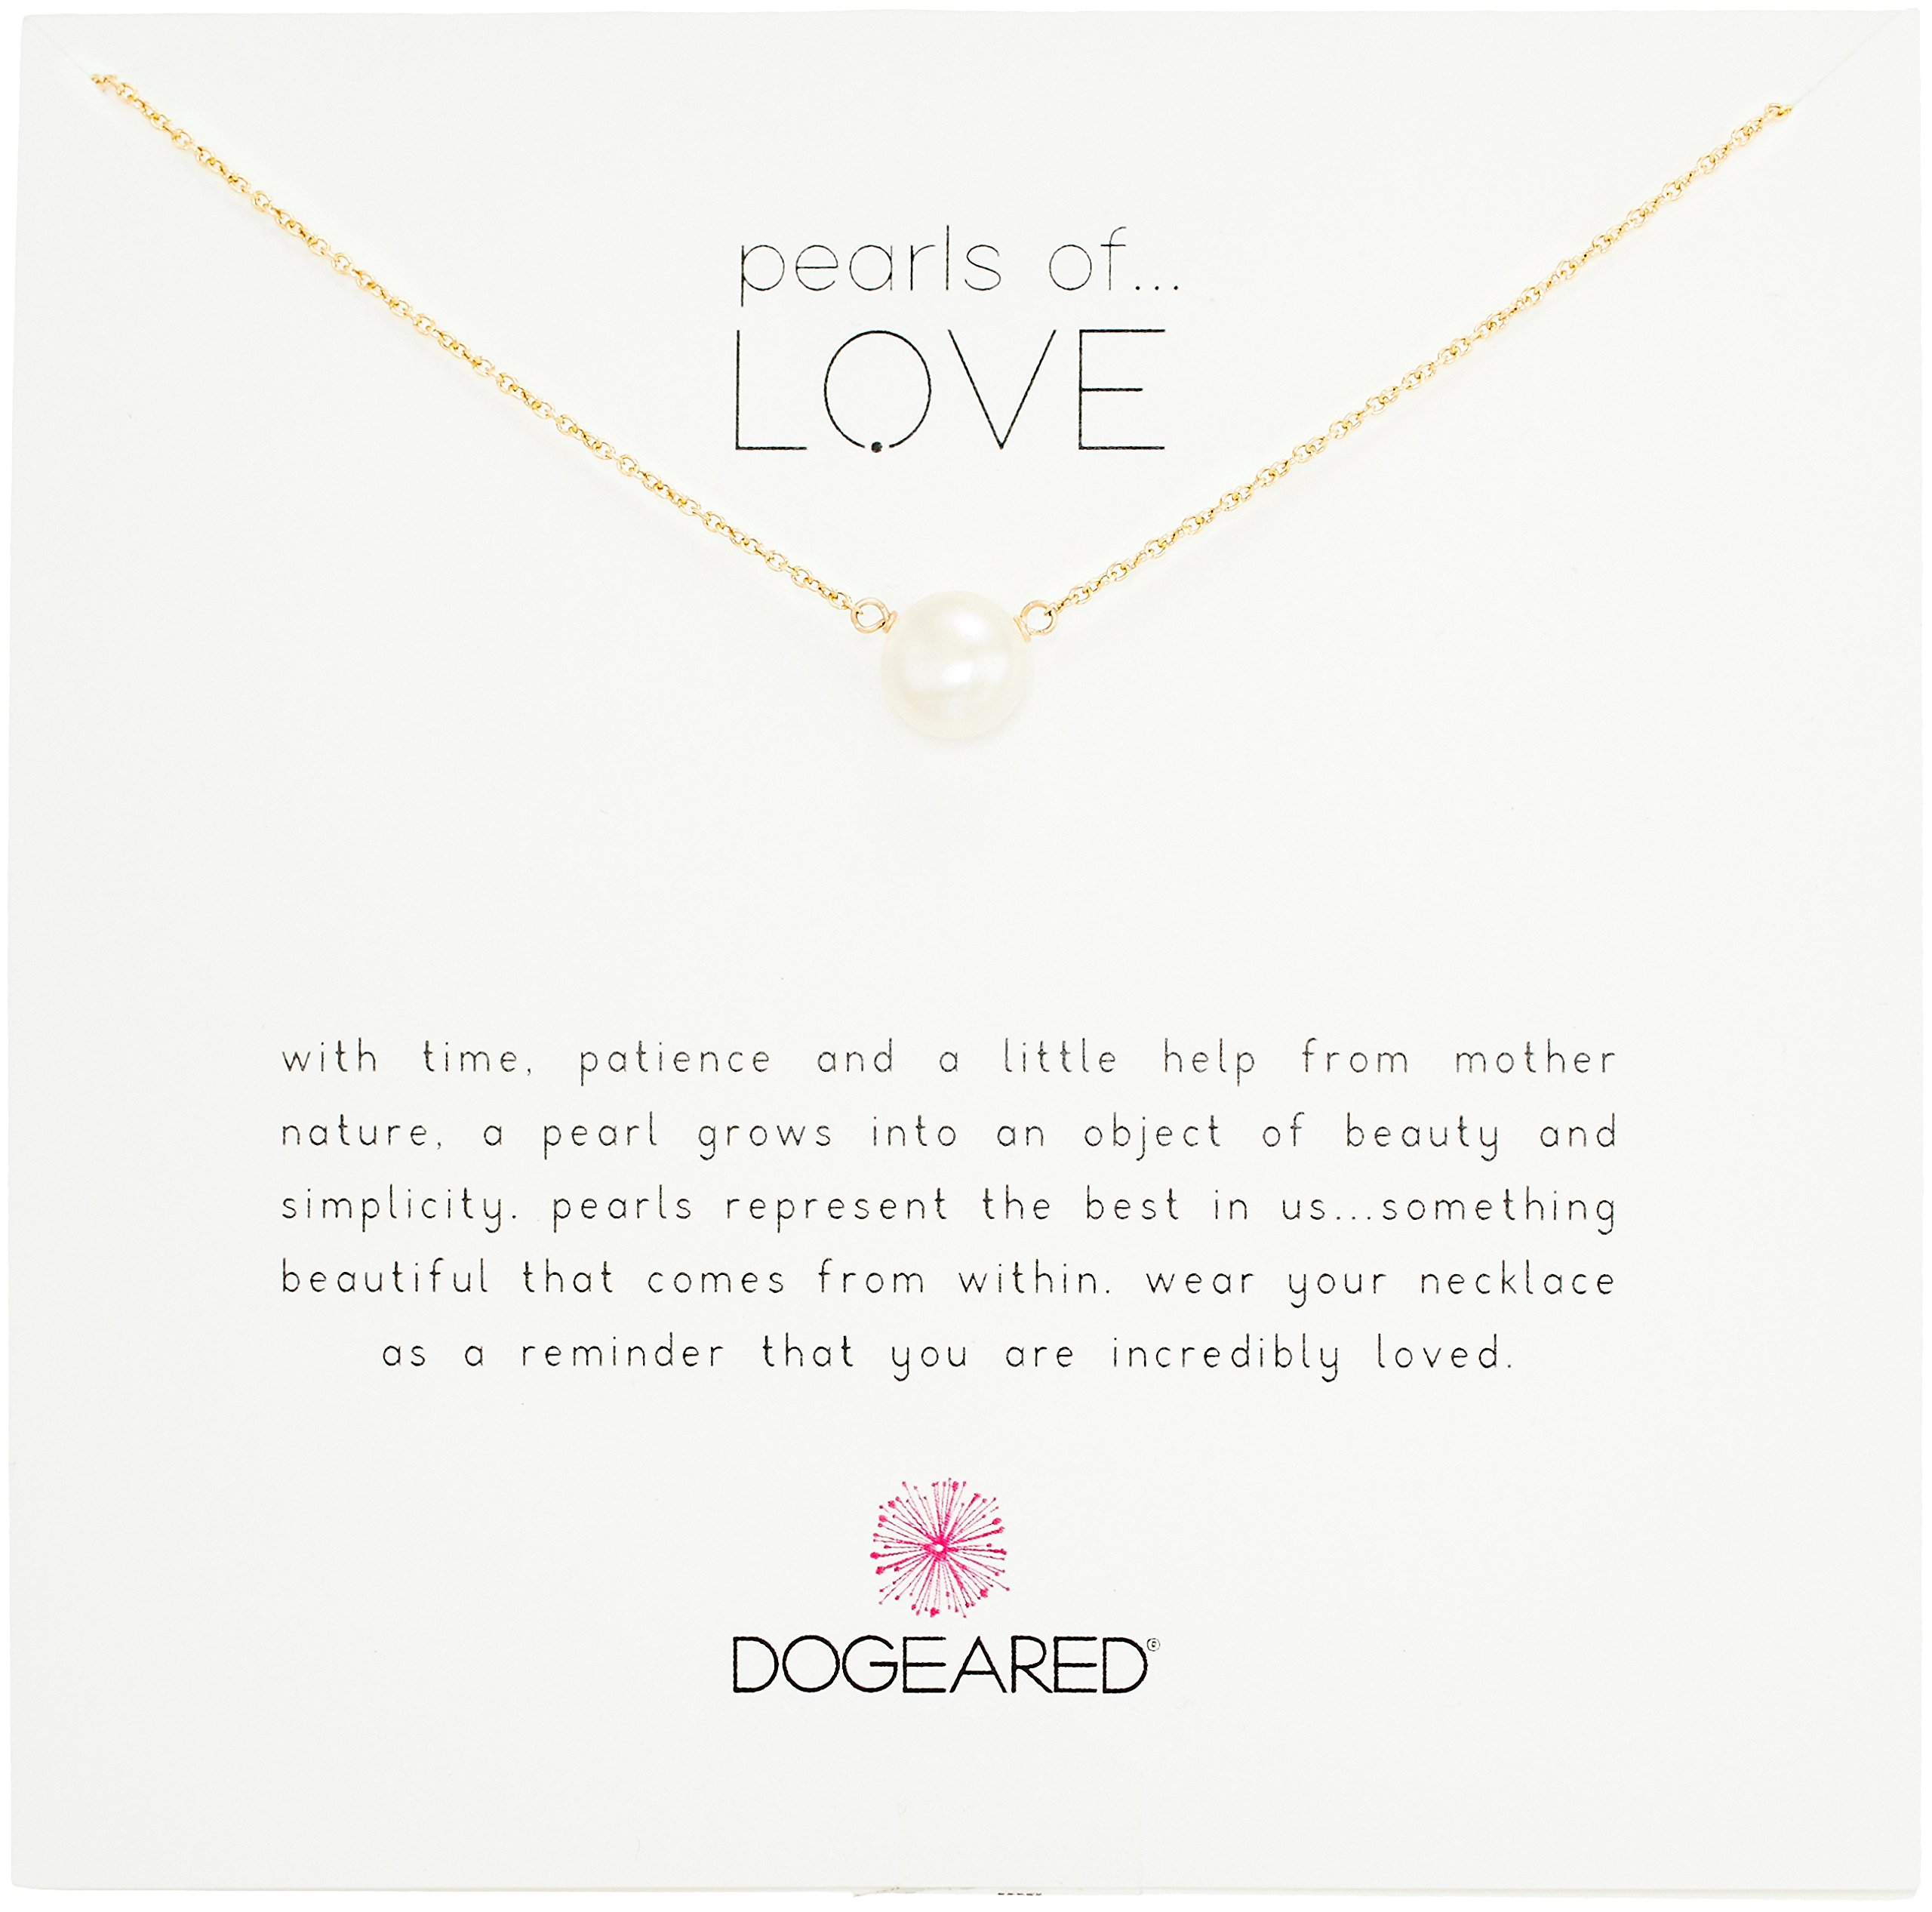 Dogeared Pearls of Love Gold 8mm Freshwater Pearl Necklace, 18''